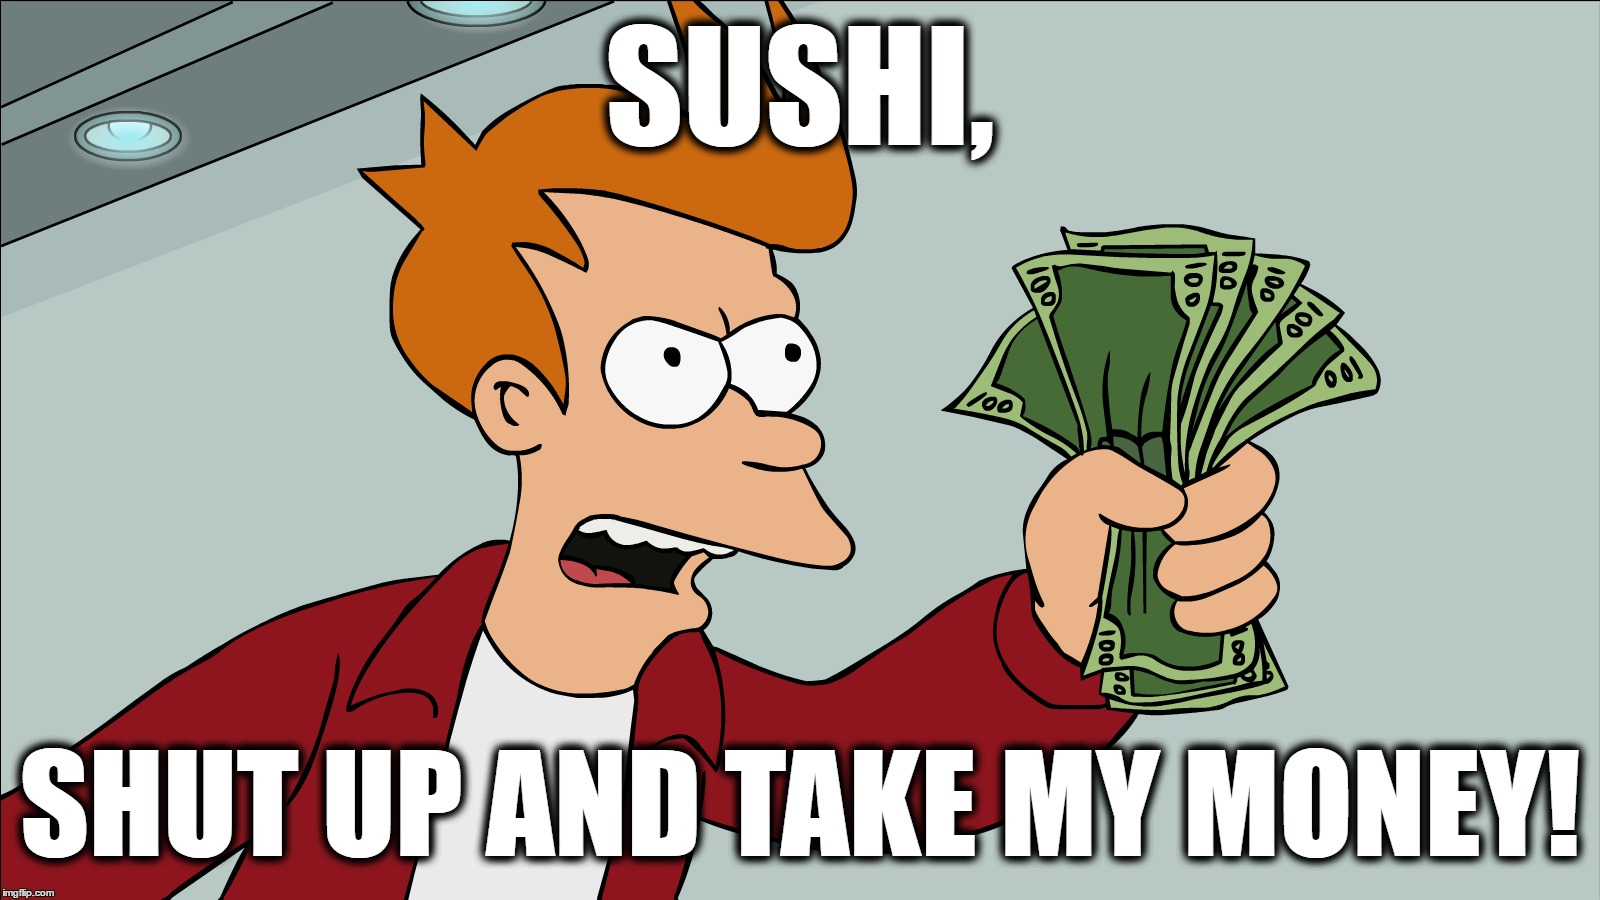 SUSHI, SHUT UP AND TAKE MY MONEY! | made w/ Imgflip meme maker